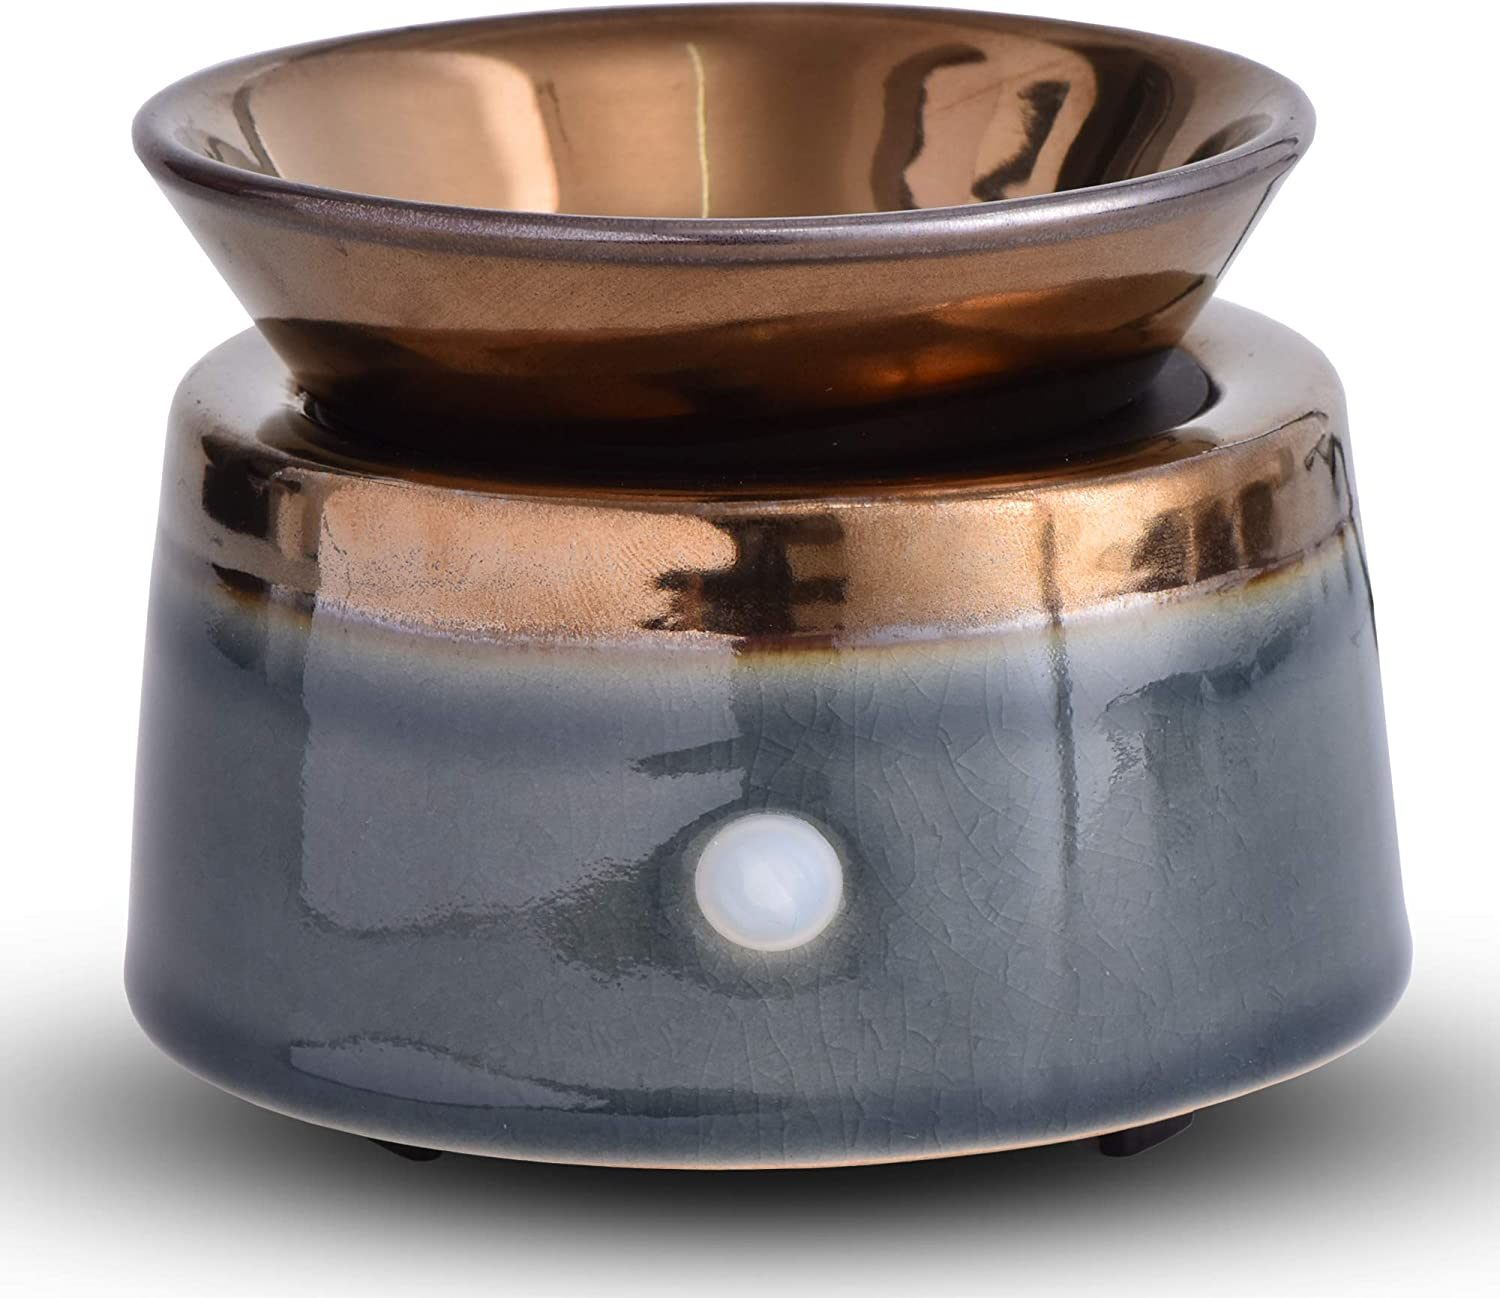 kobodon Ceramic Candle Wax El Paso Mall 2021new shipping free Scentsy Home Warmer Fragrance